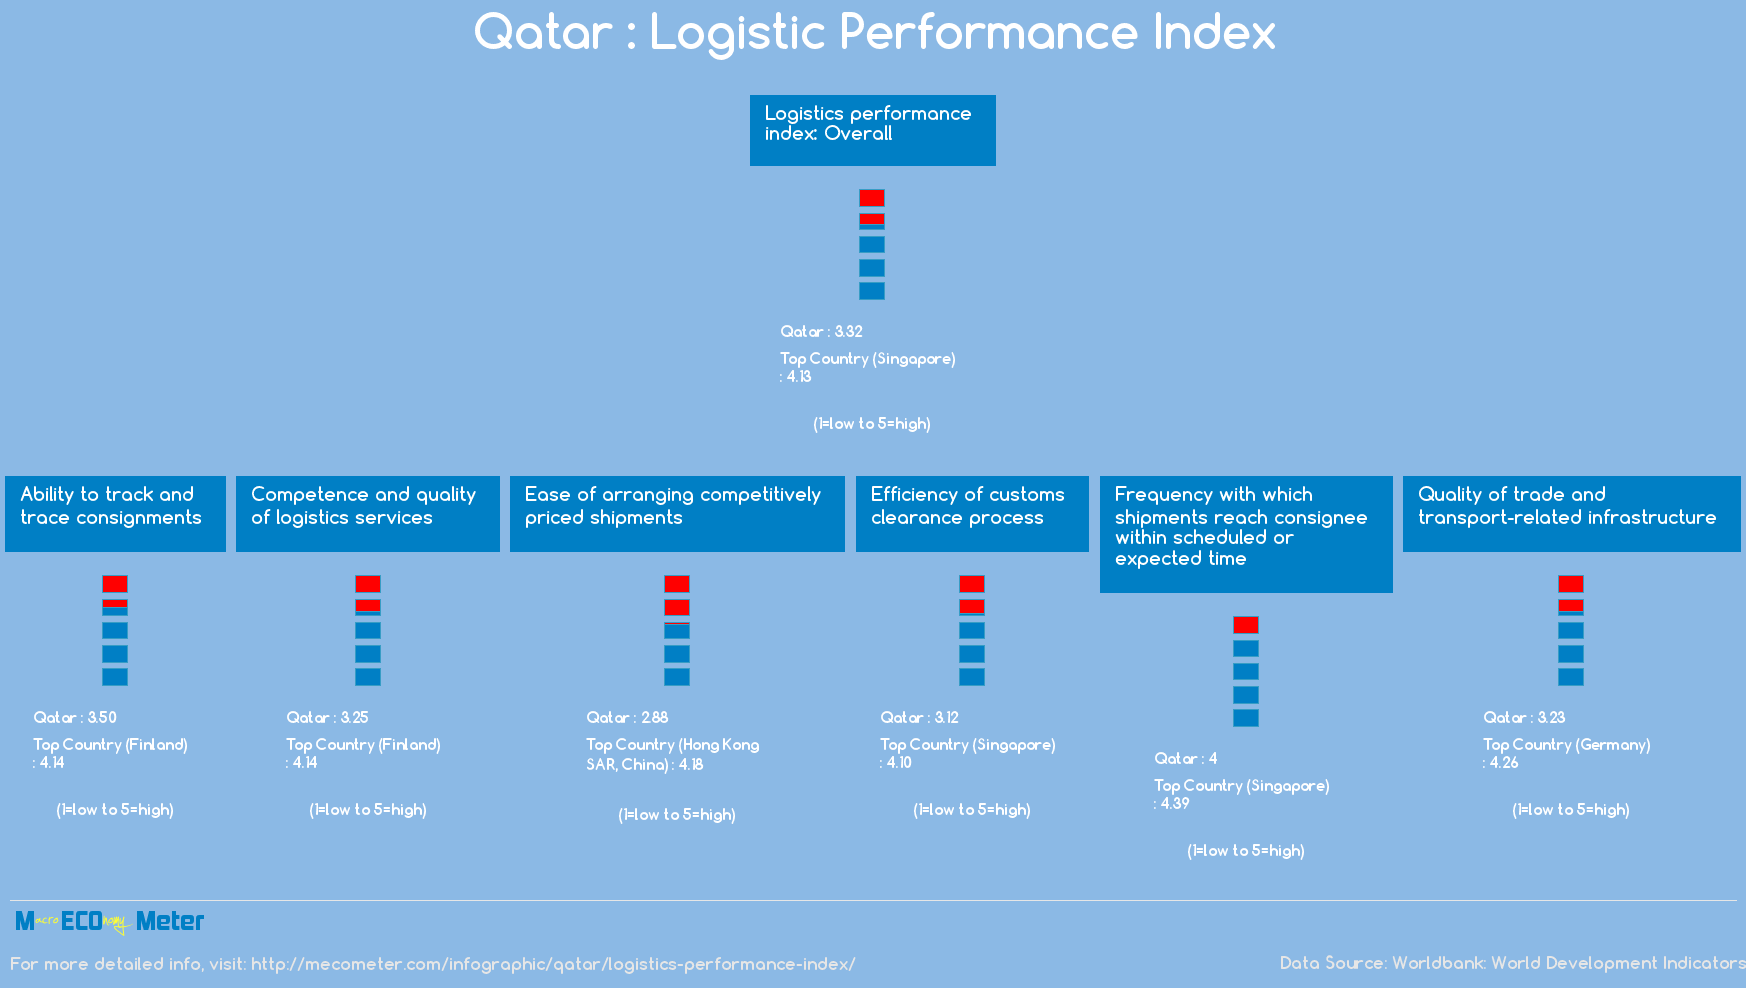 Qatar : Logistic Performance Index